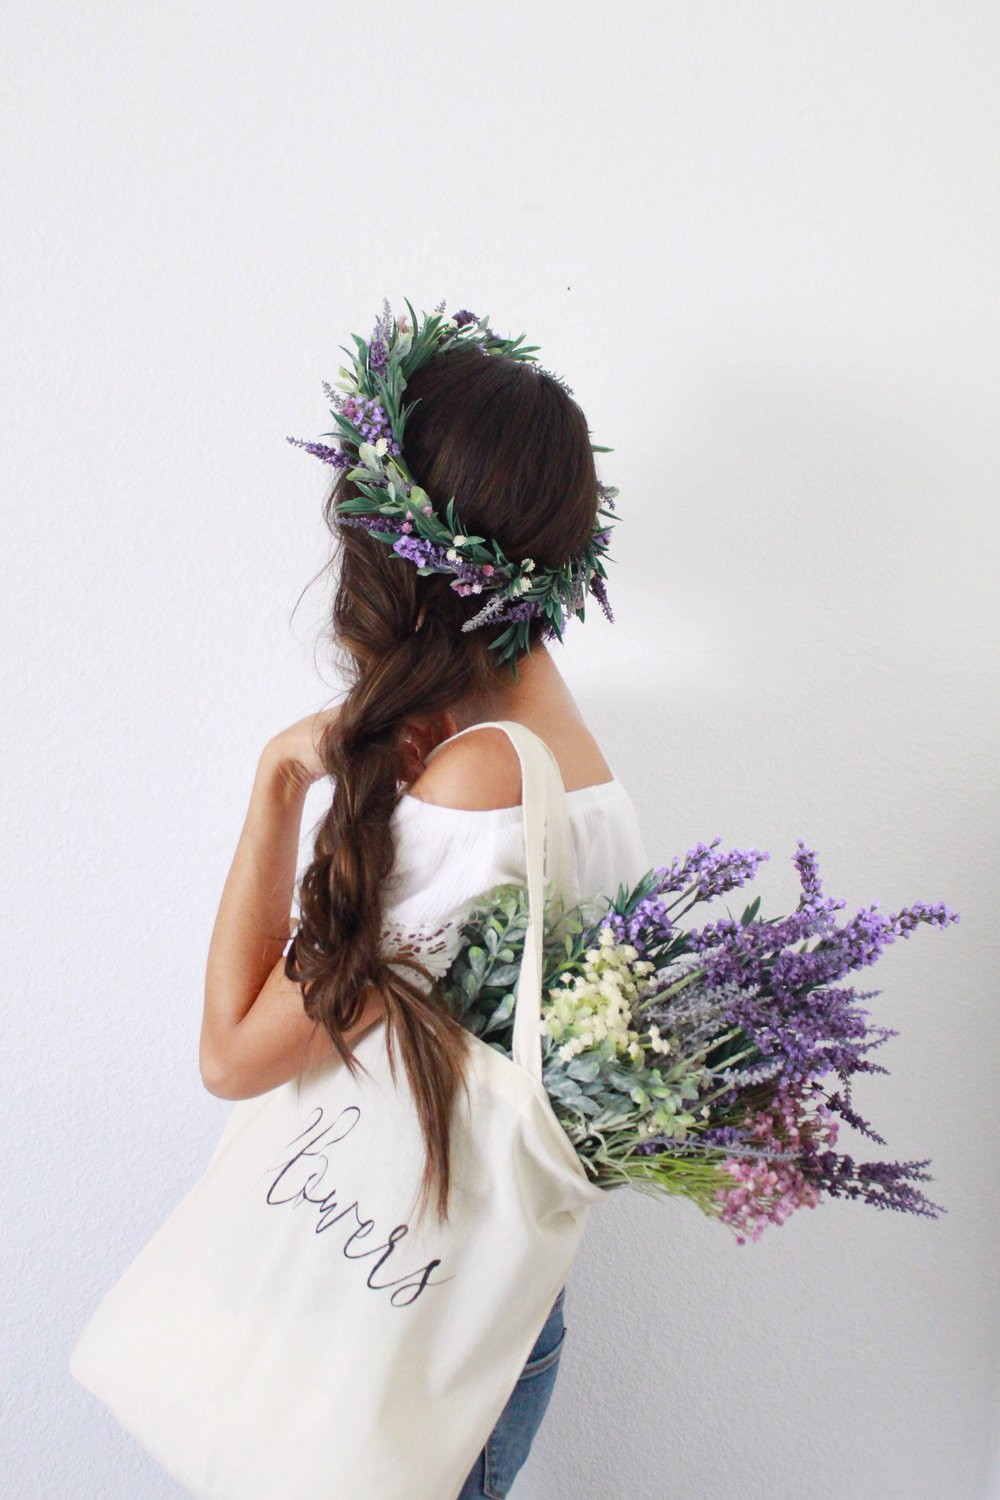 Flower crown workshop in southern california at morning lavender by Love Sparkle Pretty